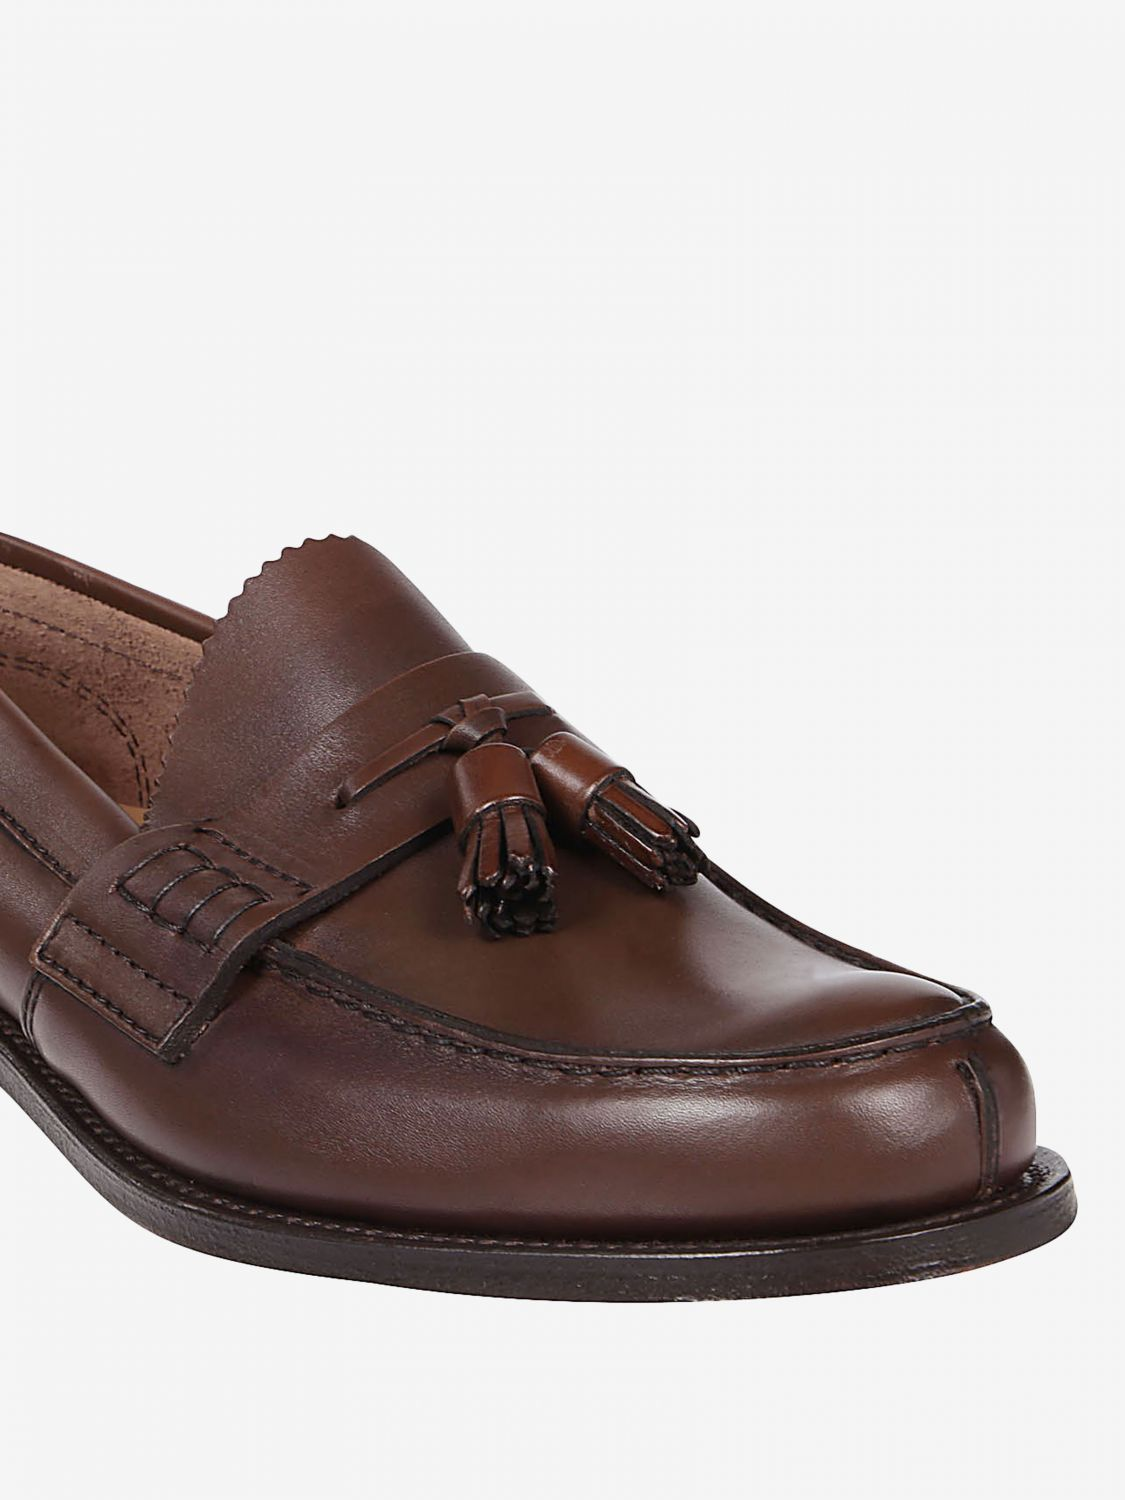 Loafers Church's: Church's moccasin in smooth leather with tassels honey 3